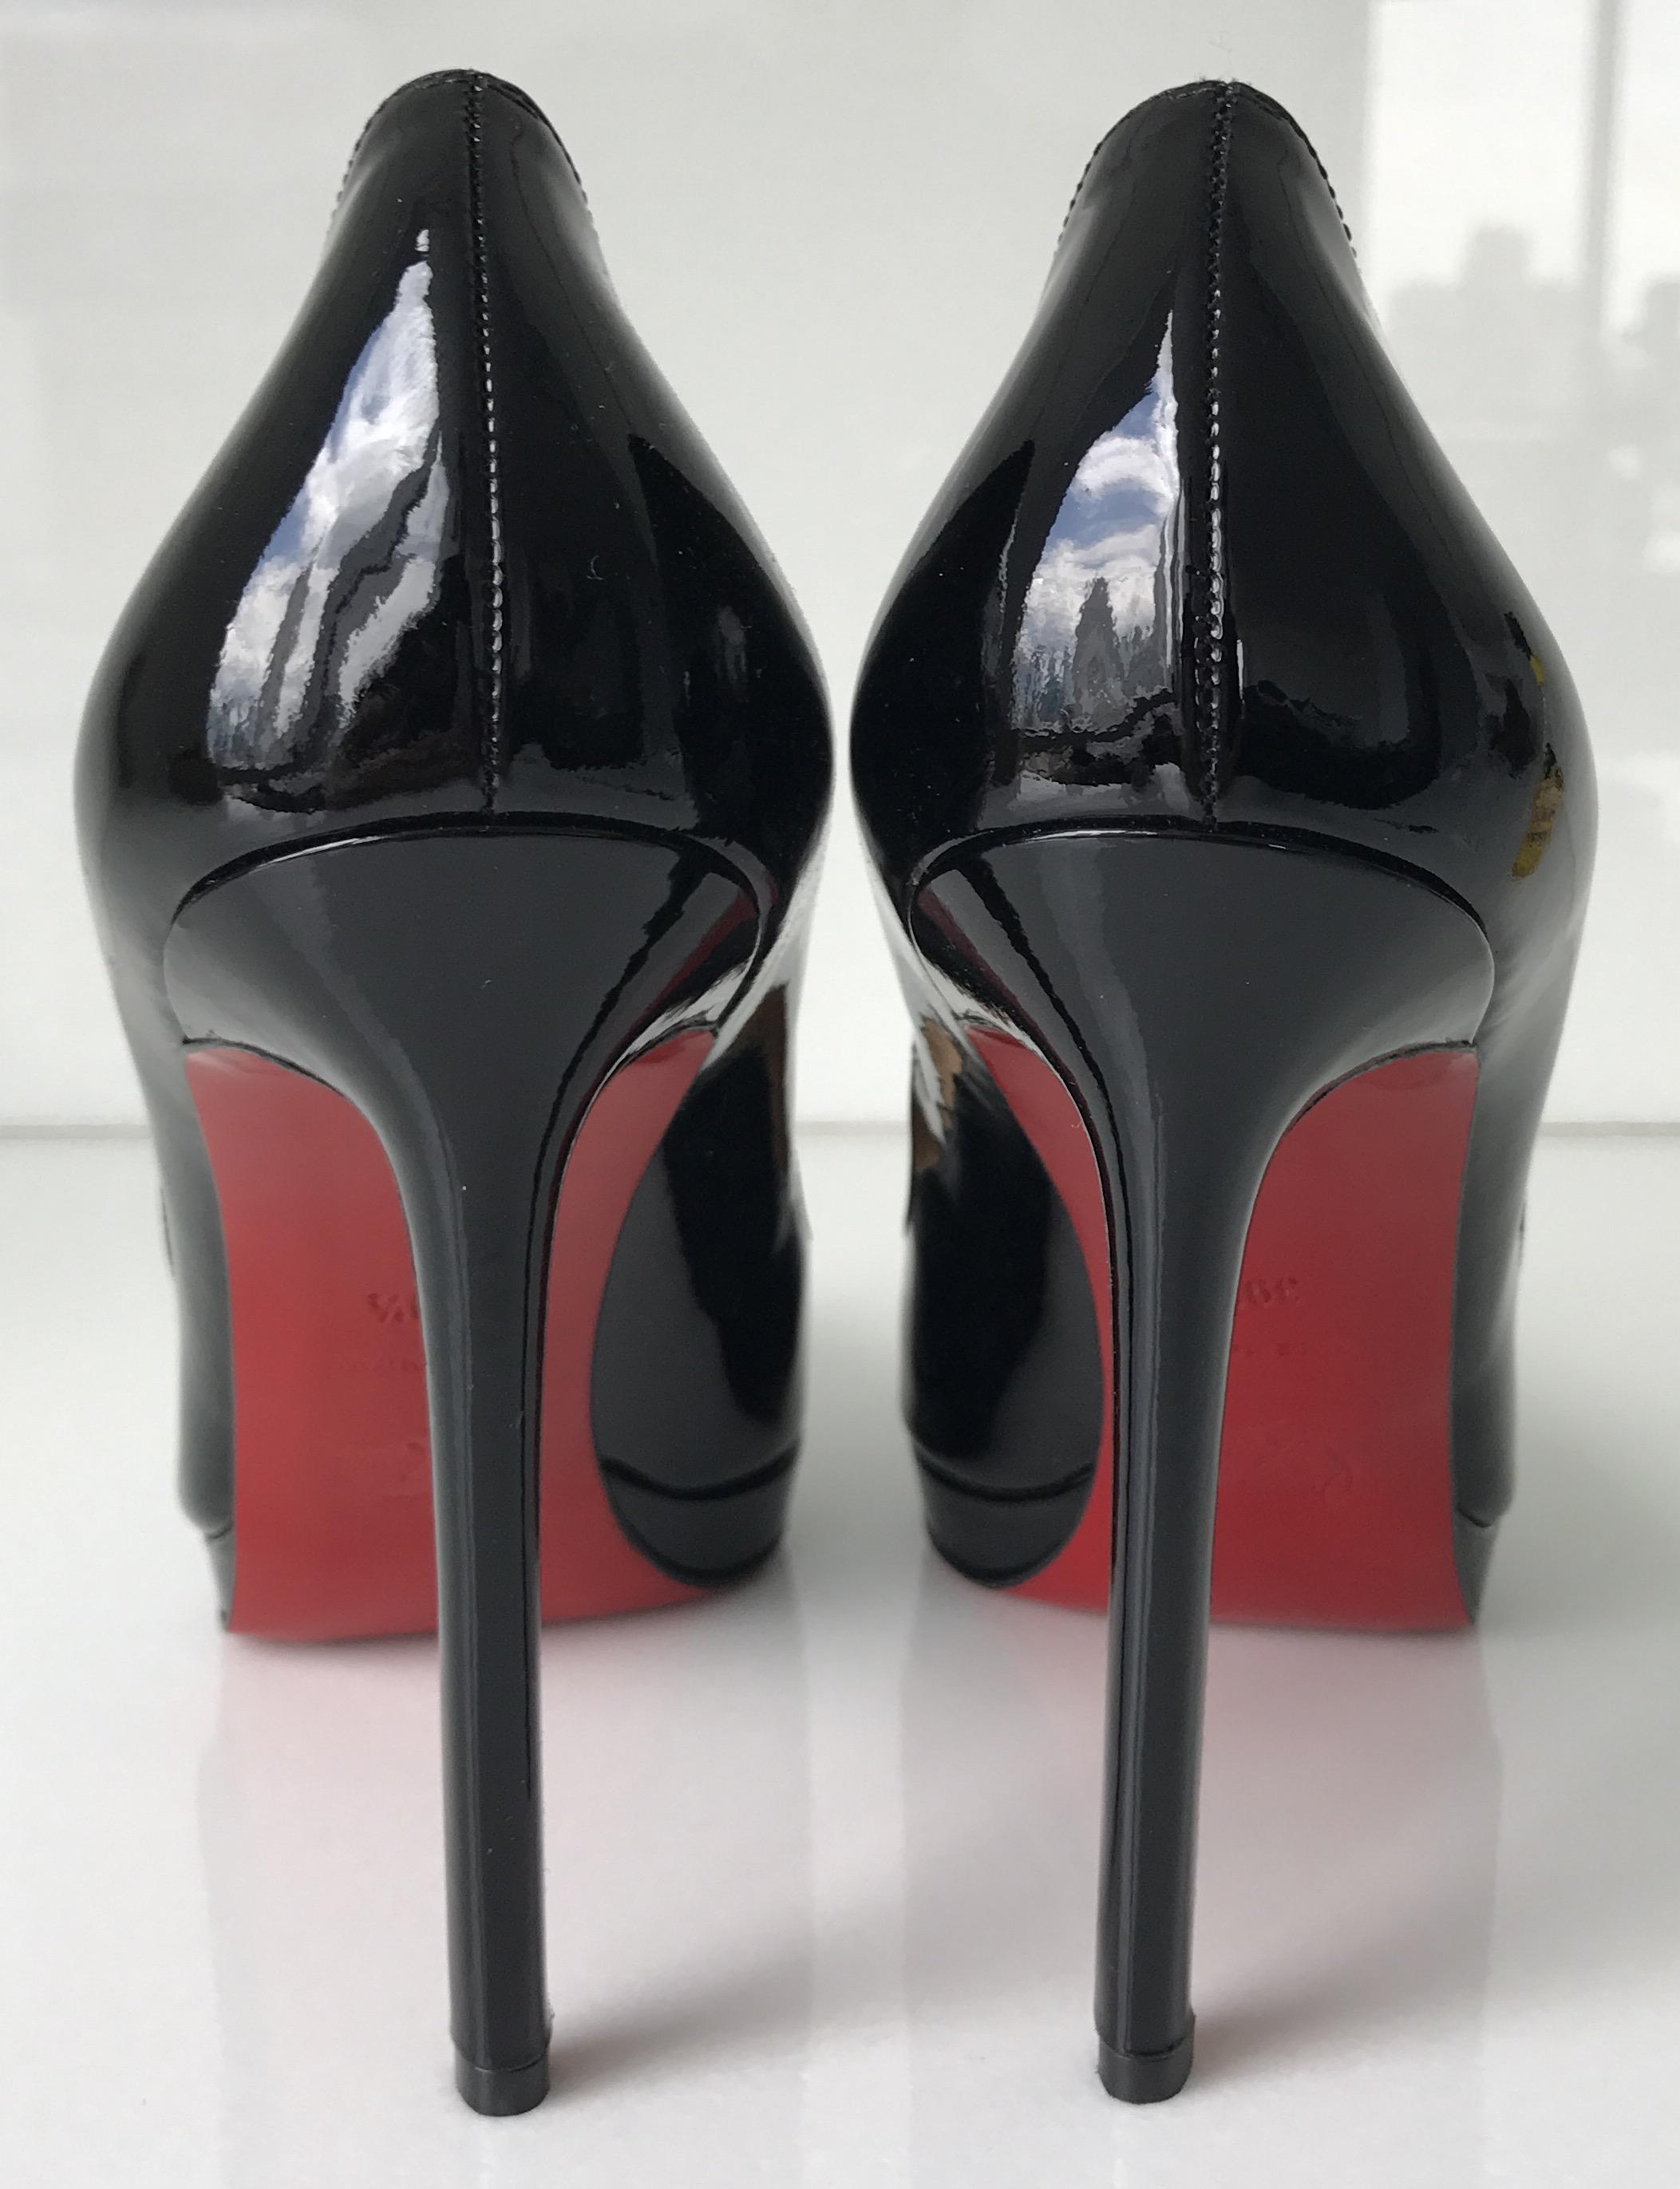 0dd9a1df3c35 ... Christian Louboutin Black Classic Pigalle Plate 120mm Point Toe Patent  Patent Patent Leather Sz. 39.5 ...